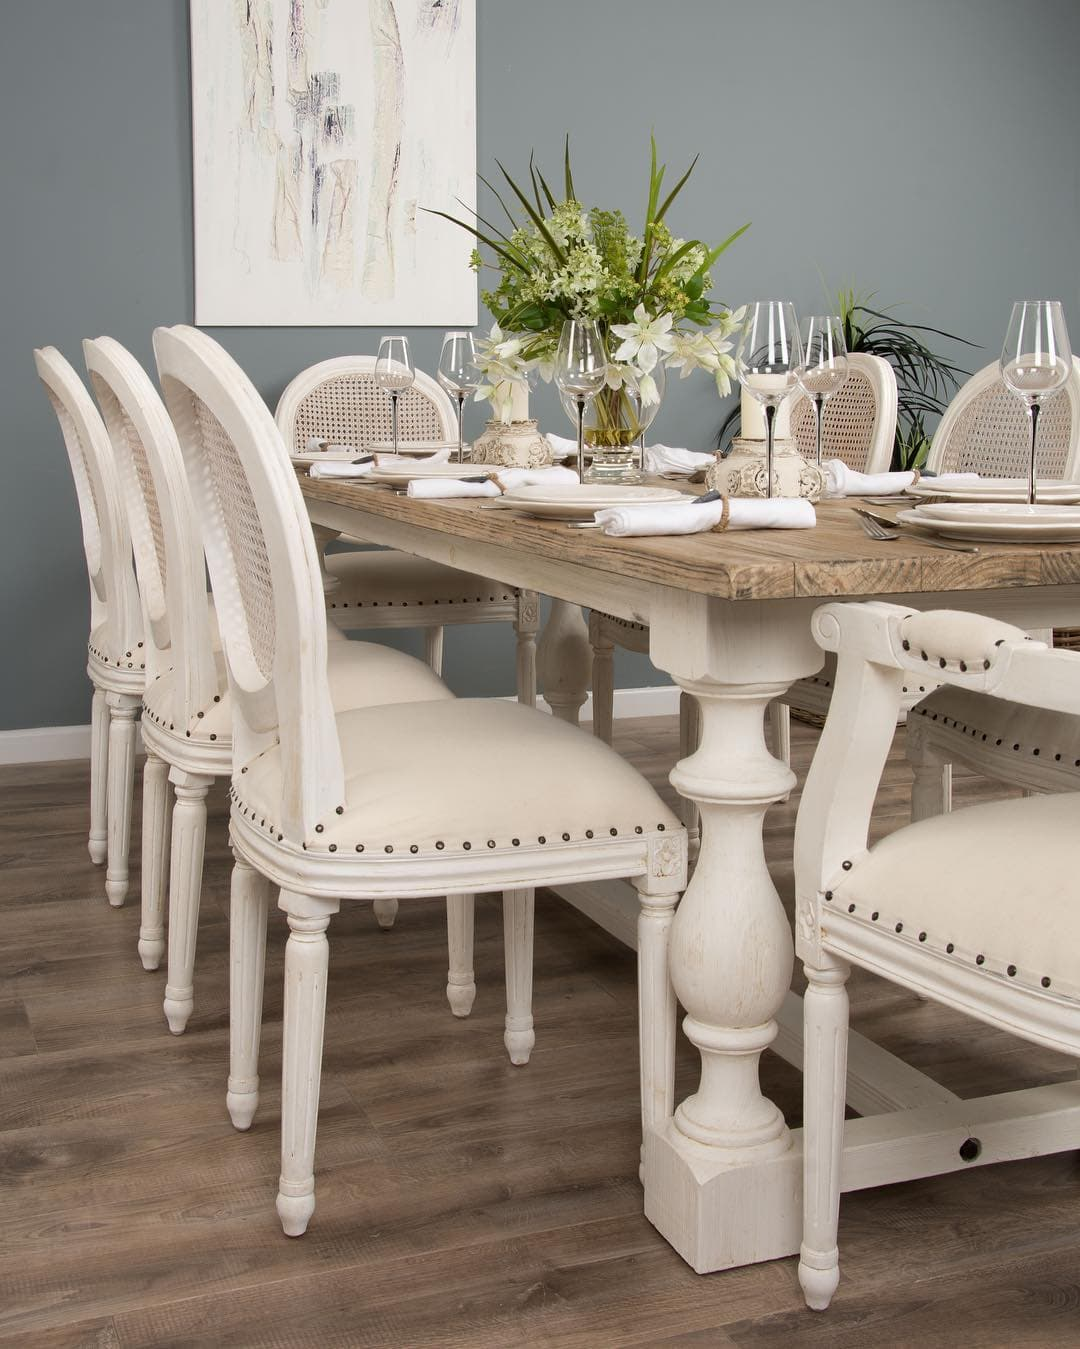 this is a shabby chic inspired dining table and chairs by sustainable furniture